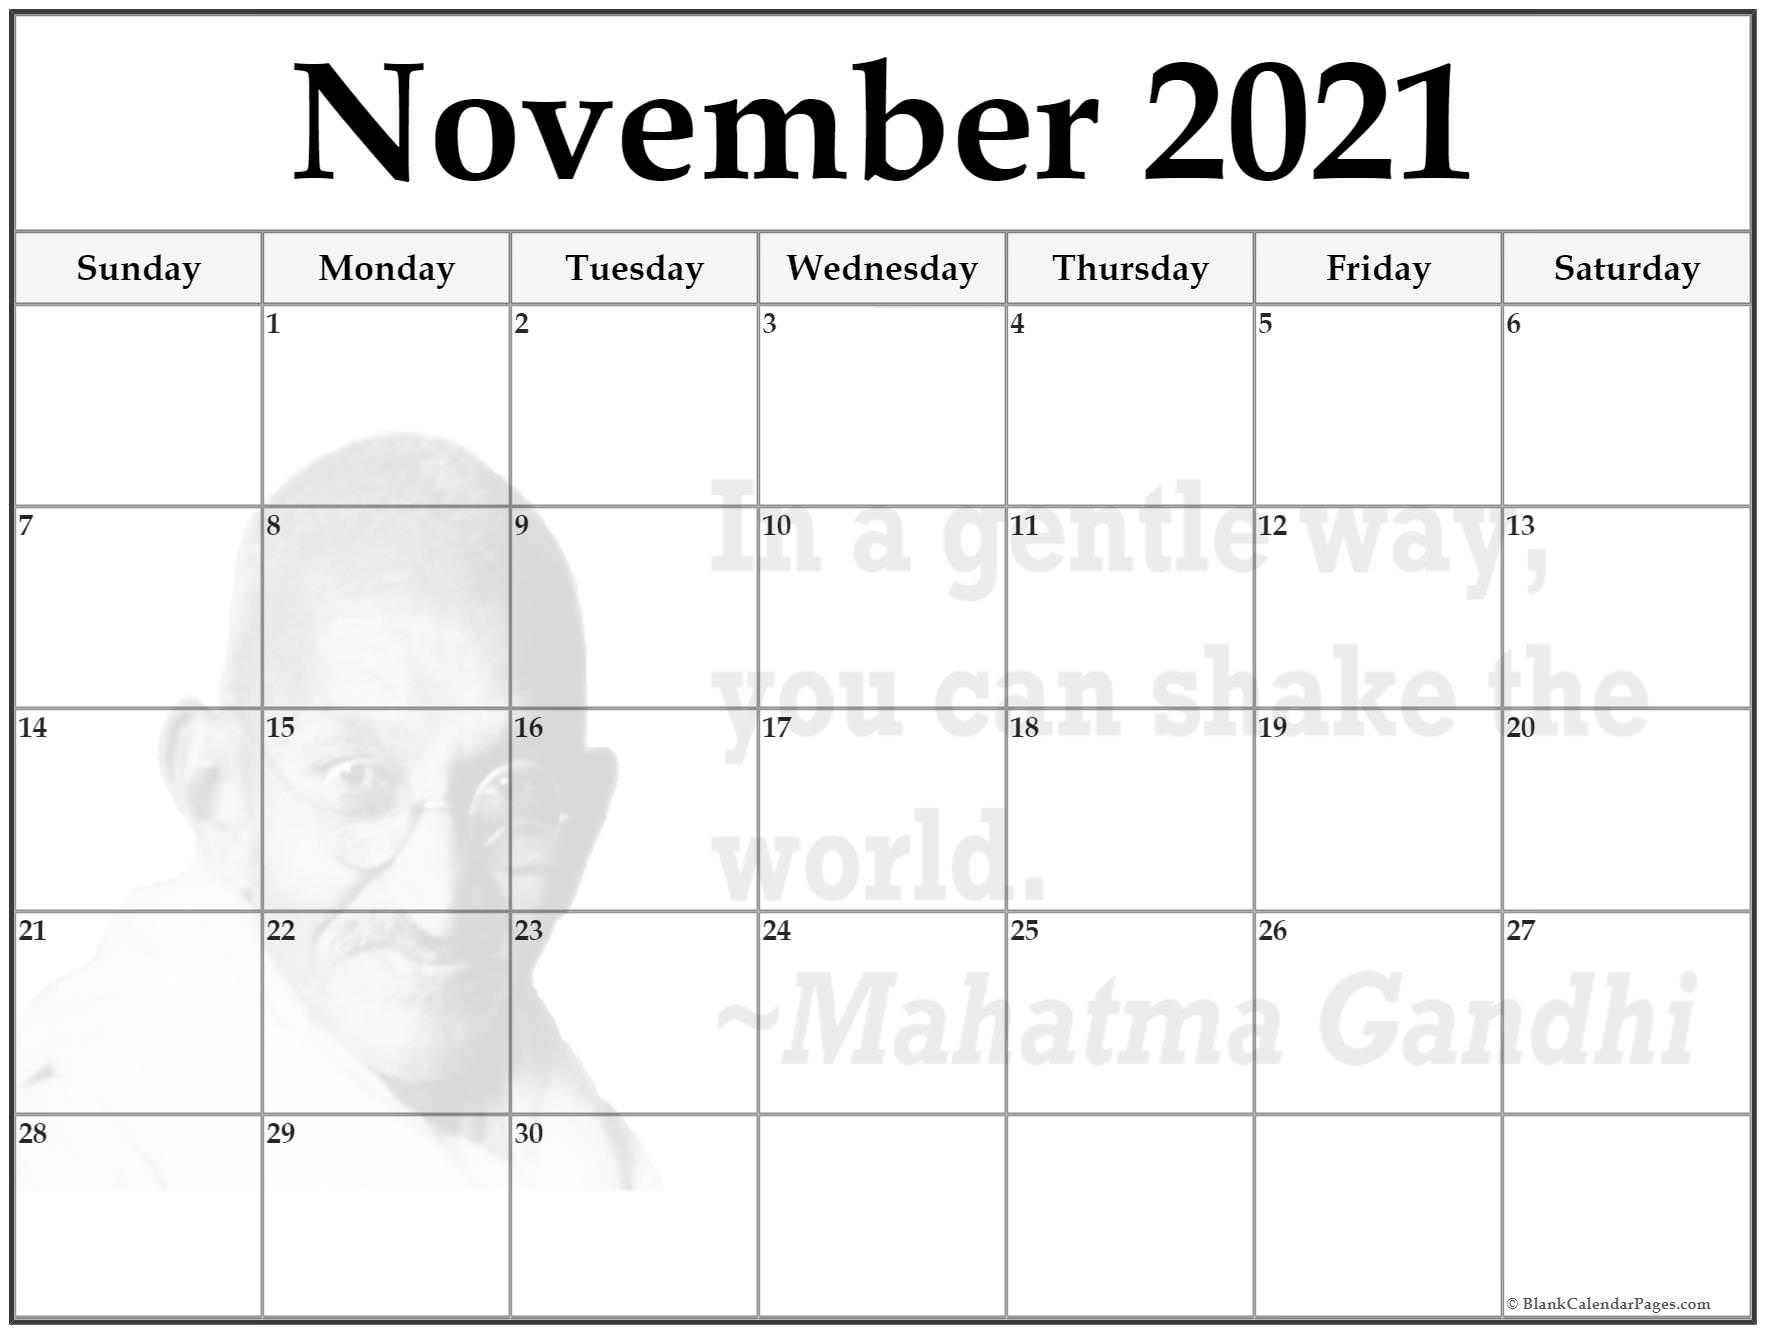 November 2019 quote calendar . In a gentle way, you can shake the world. ~Mahatma Gandhi